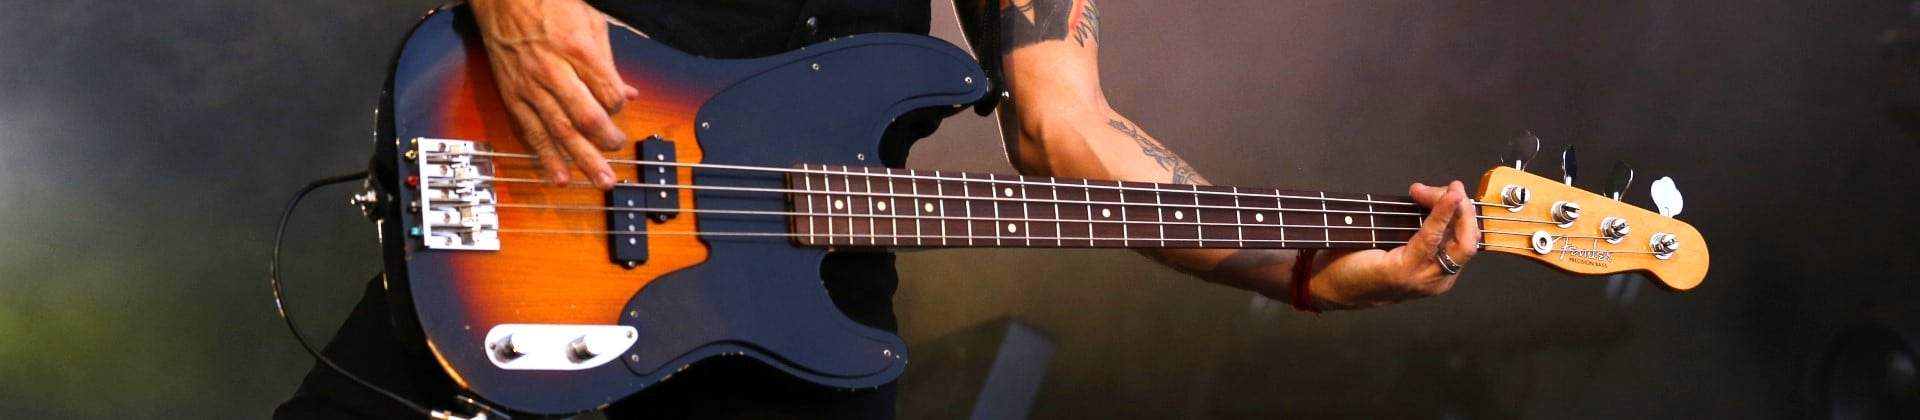 Best Short Scale Basses Reviewed in Detail [Jan. 2020]